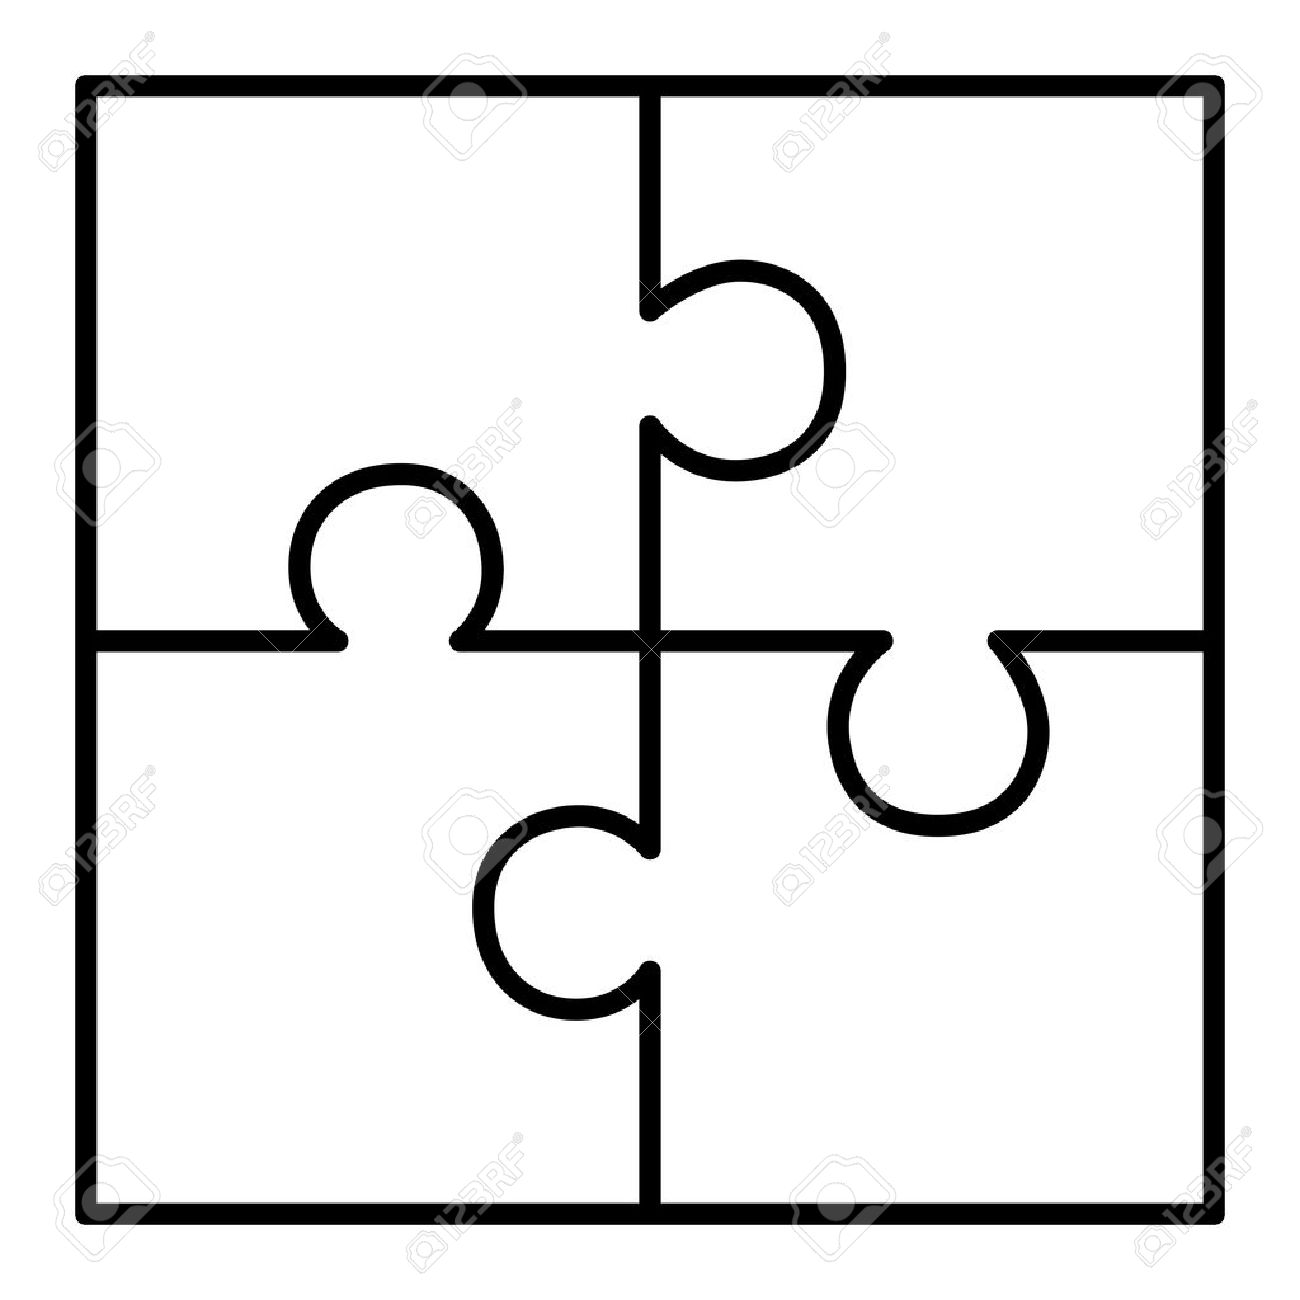 hight resolution of four piece puzzle diagram illustration